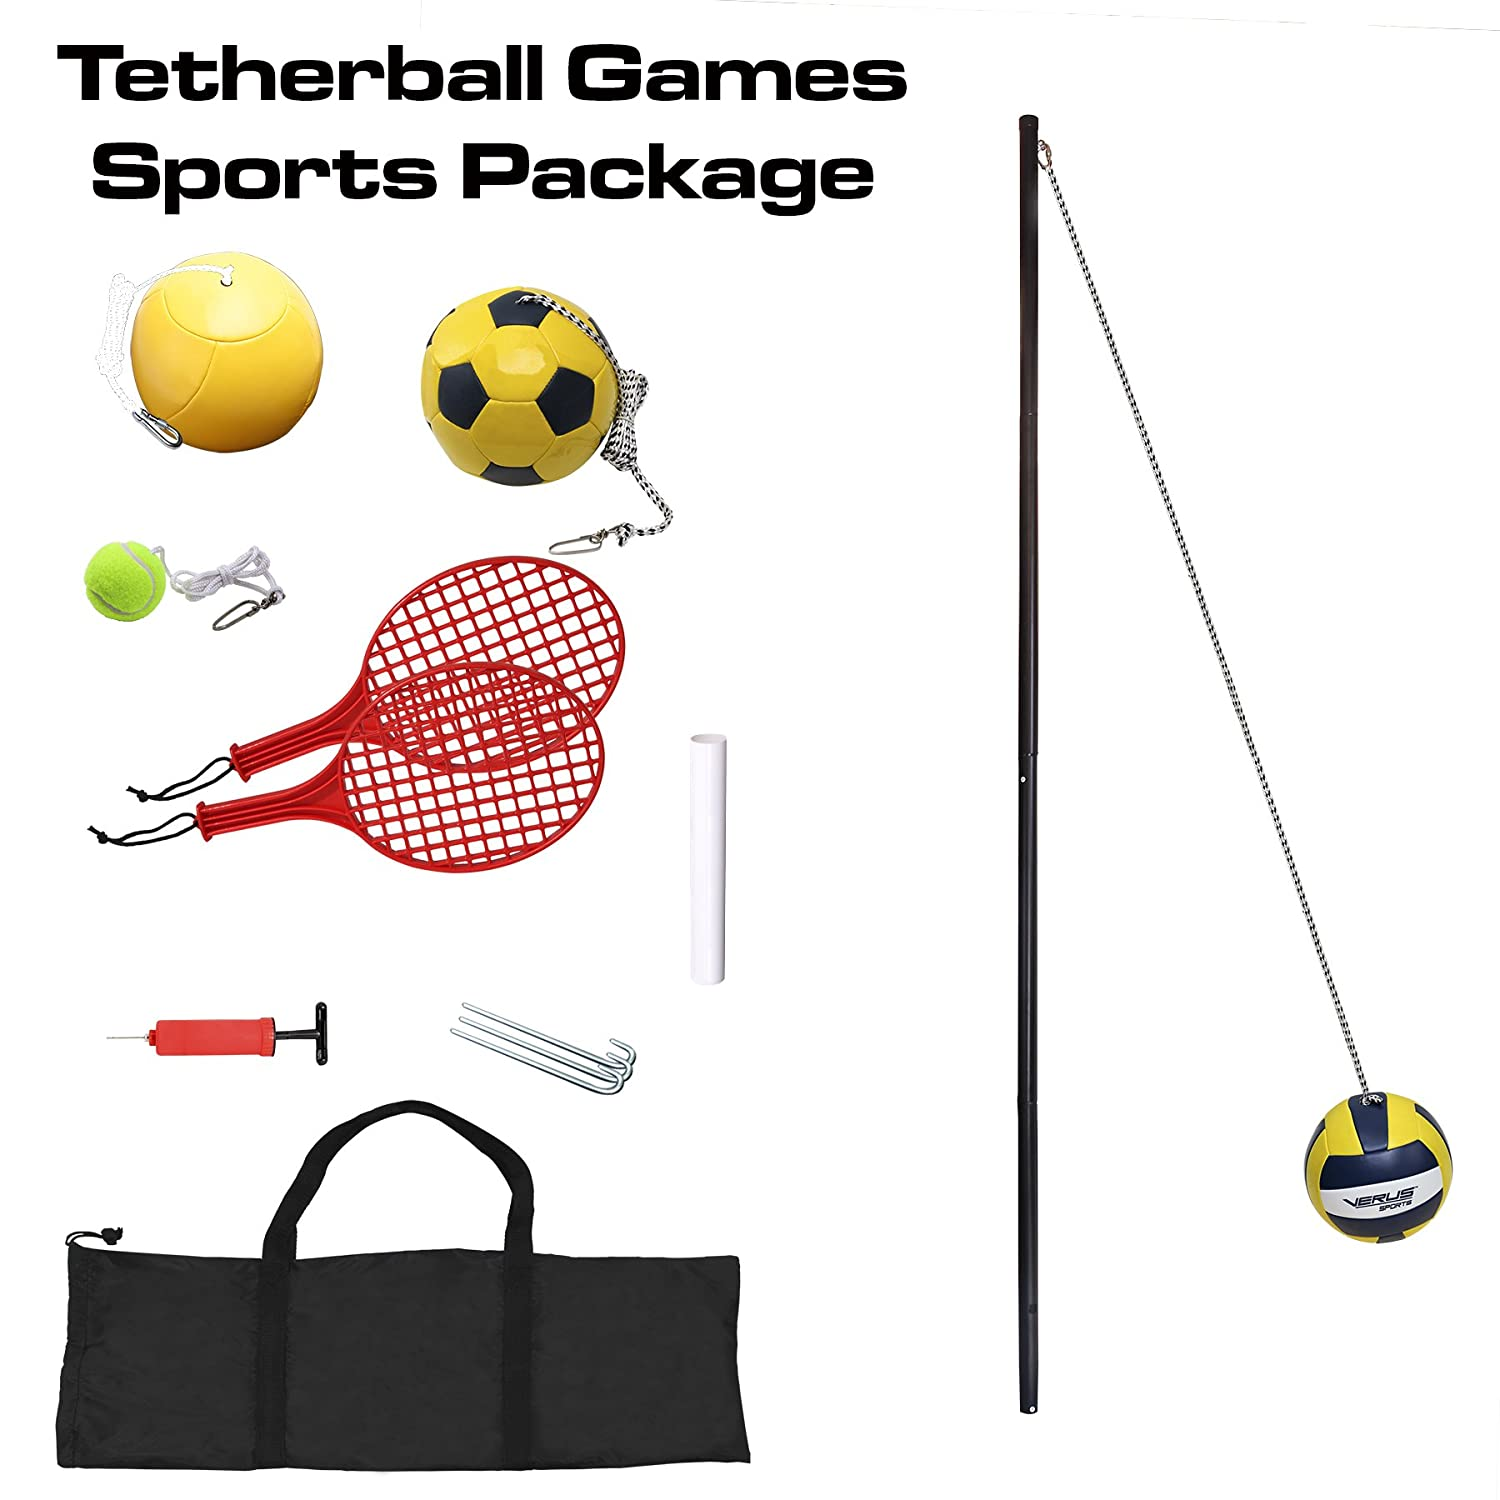 Verus Sports in-Ground 3-in-1 Tetherball Set Inc. TO400